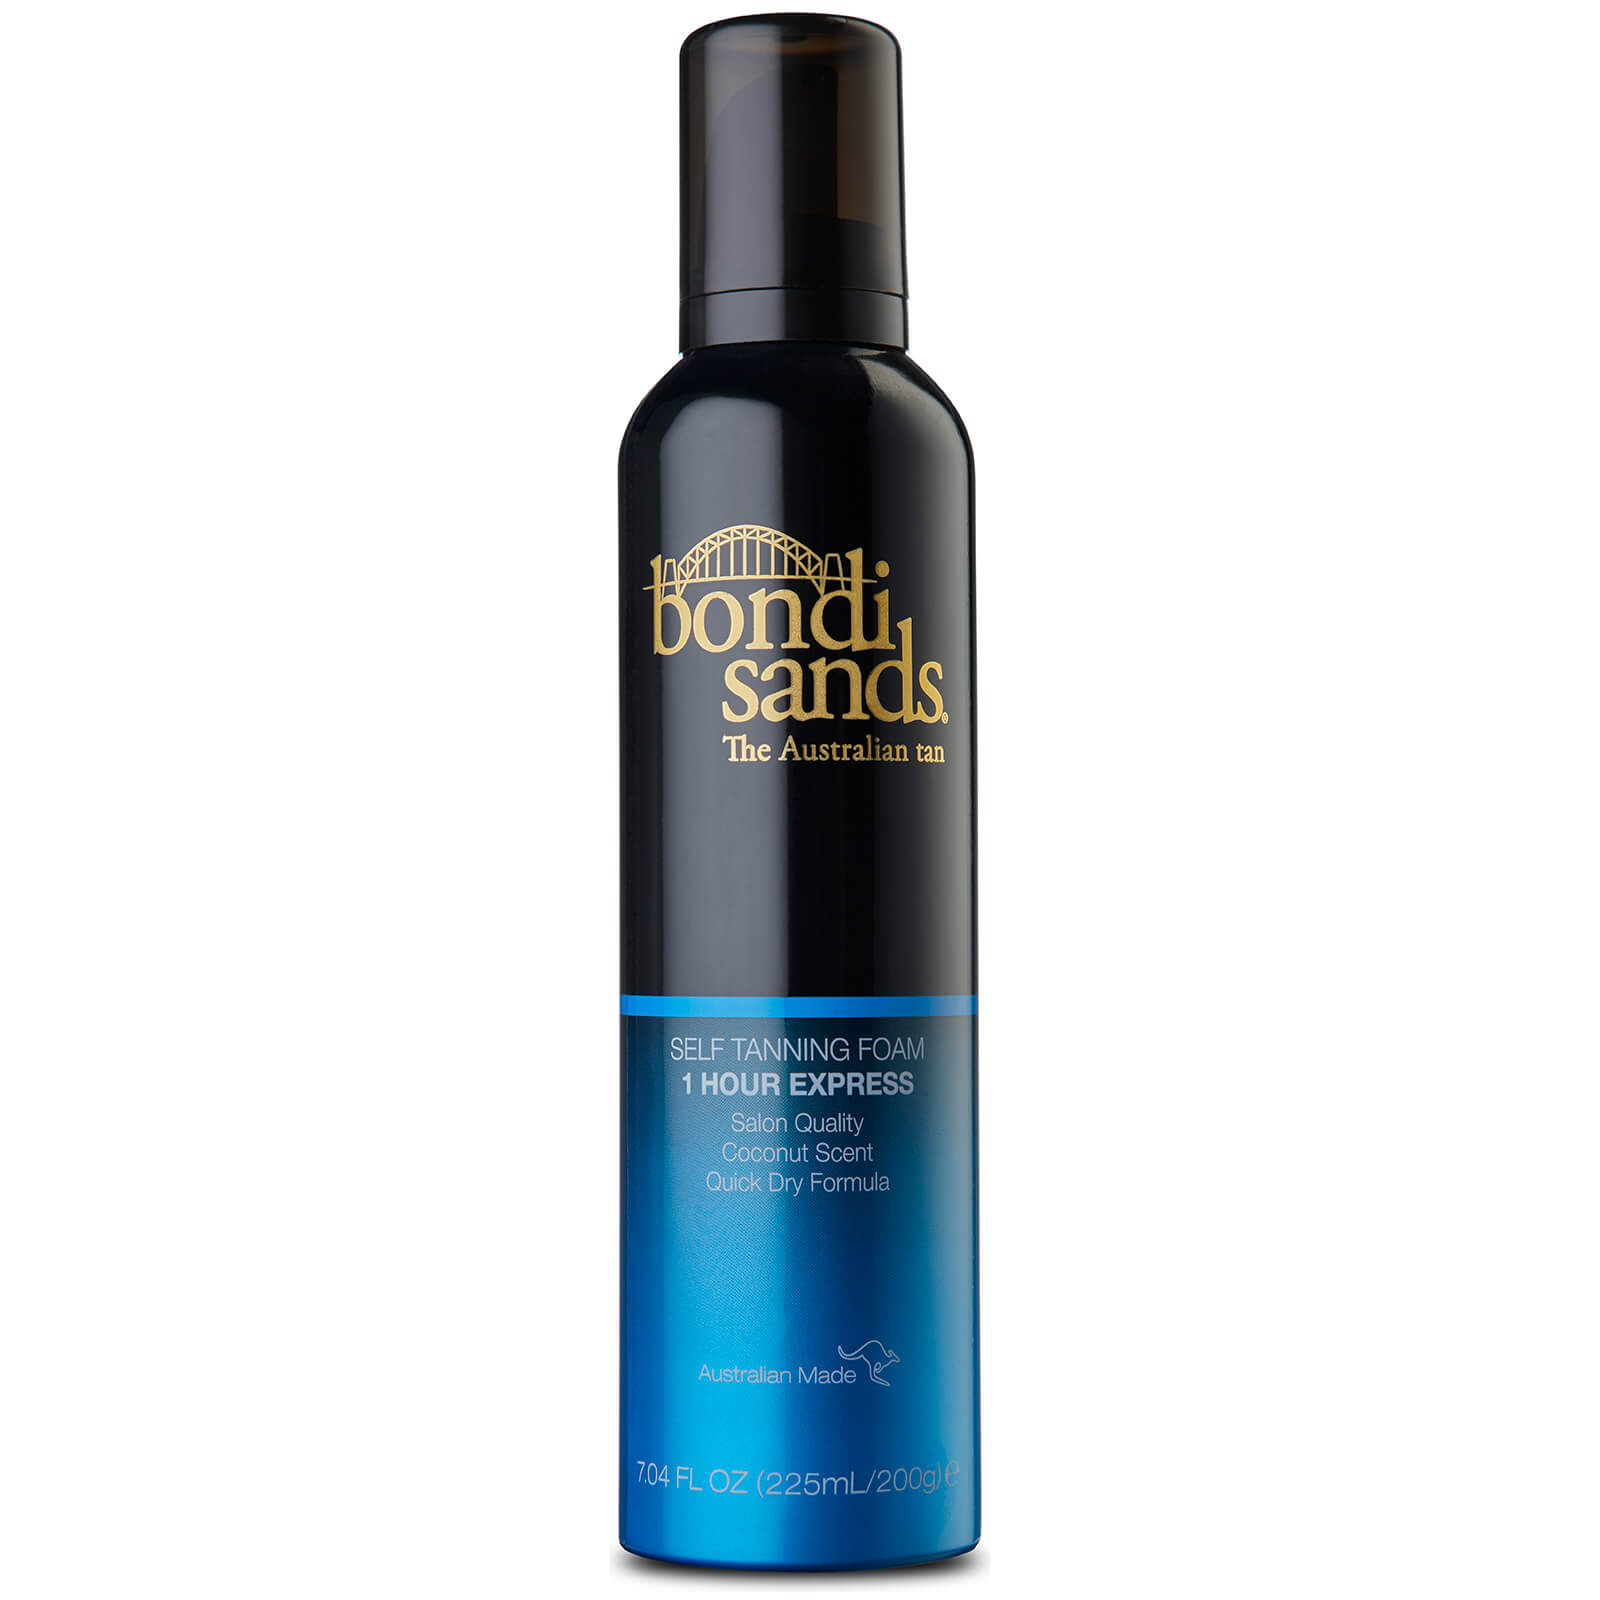 Bondi Sands 1 Hour Express Self Tanning Foam 200g  5562cd1f26ddf